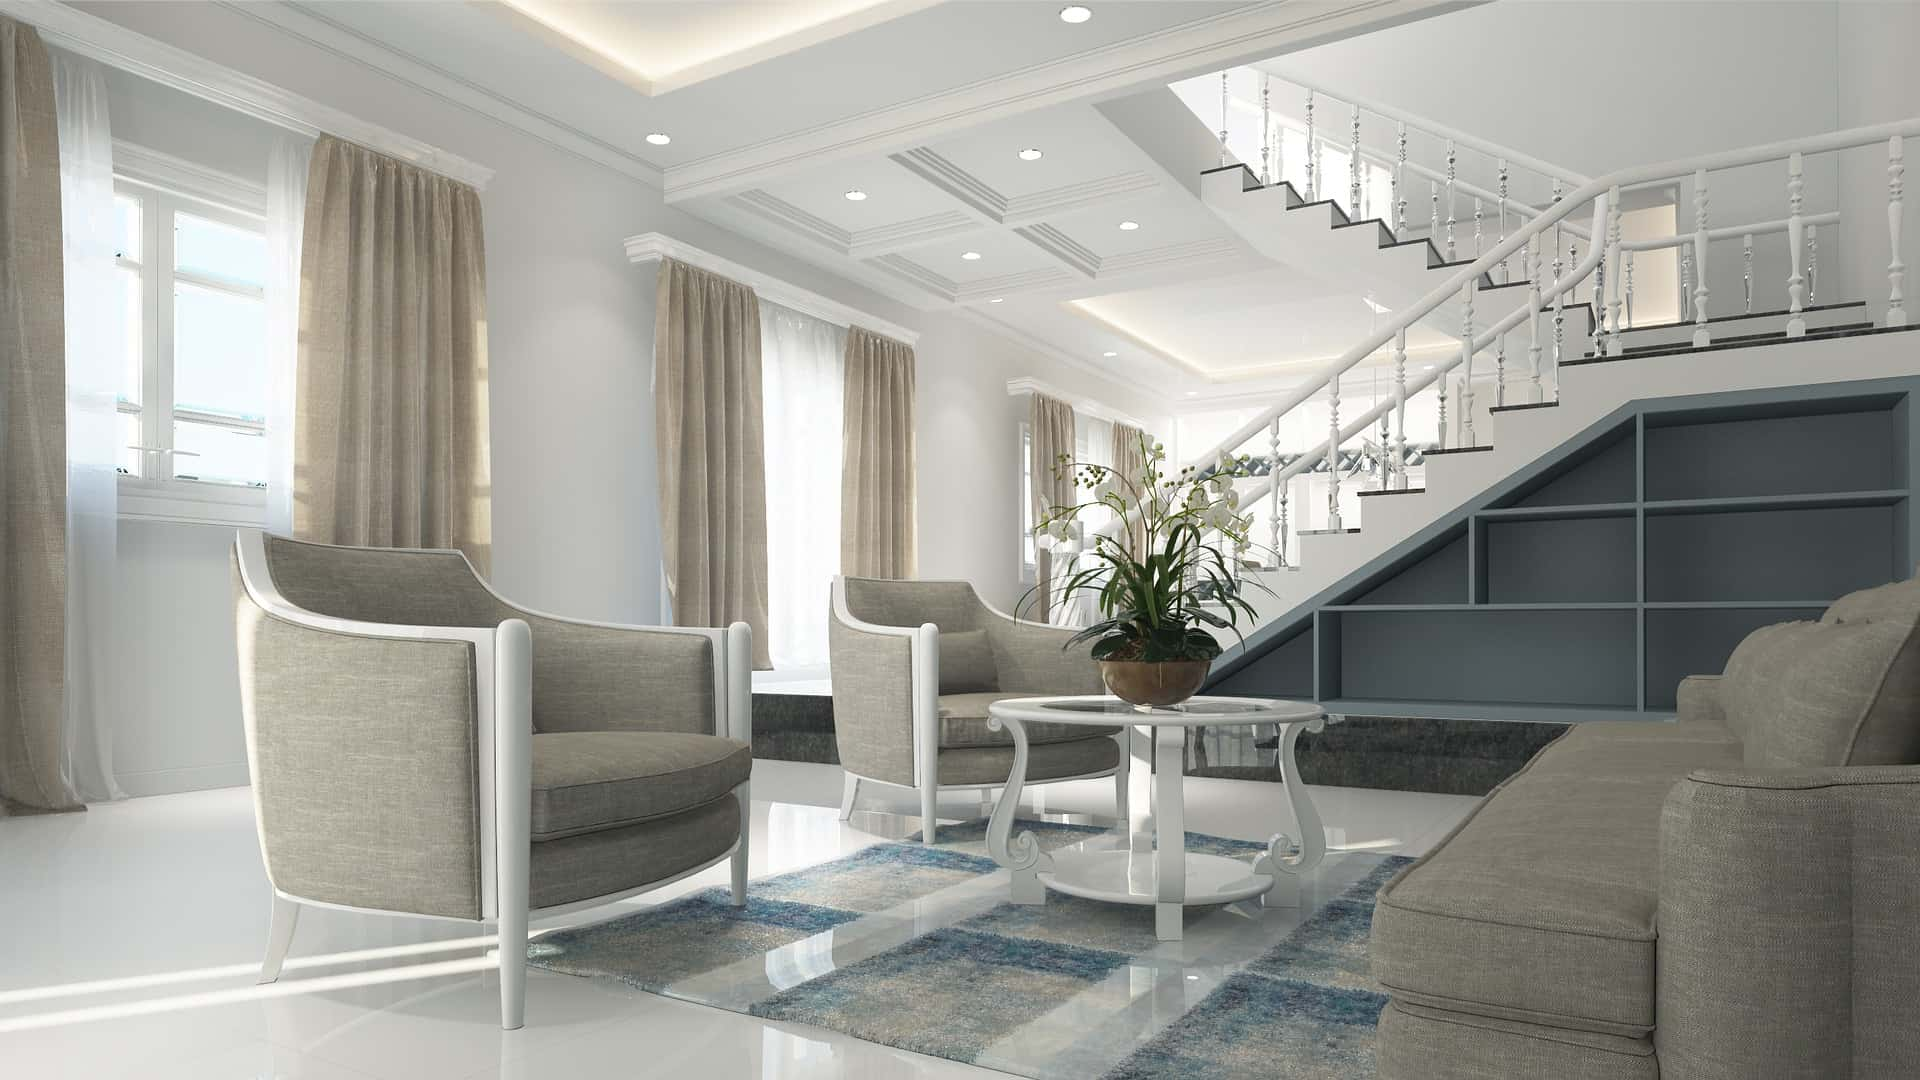 Add A Zing To Your Home Plans With White